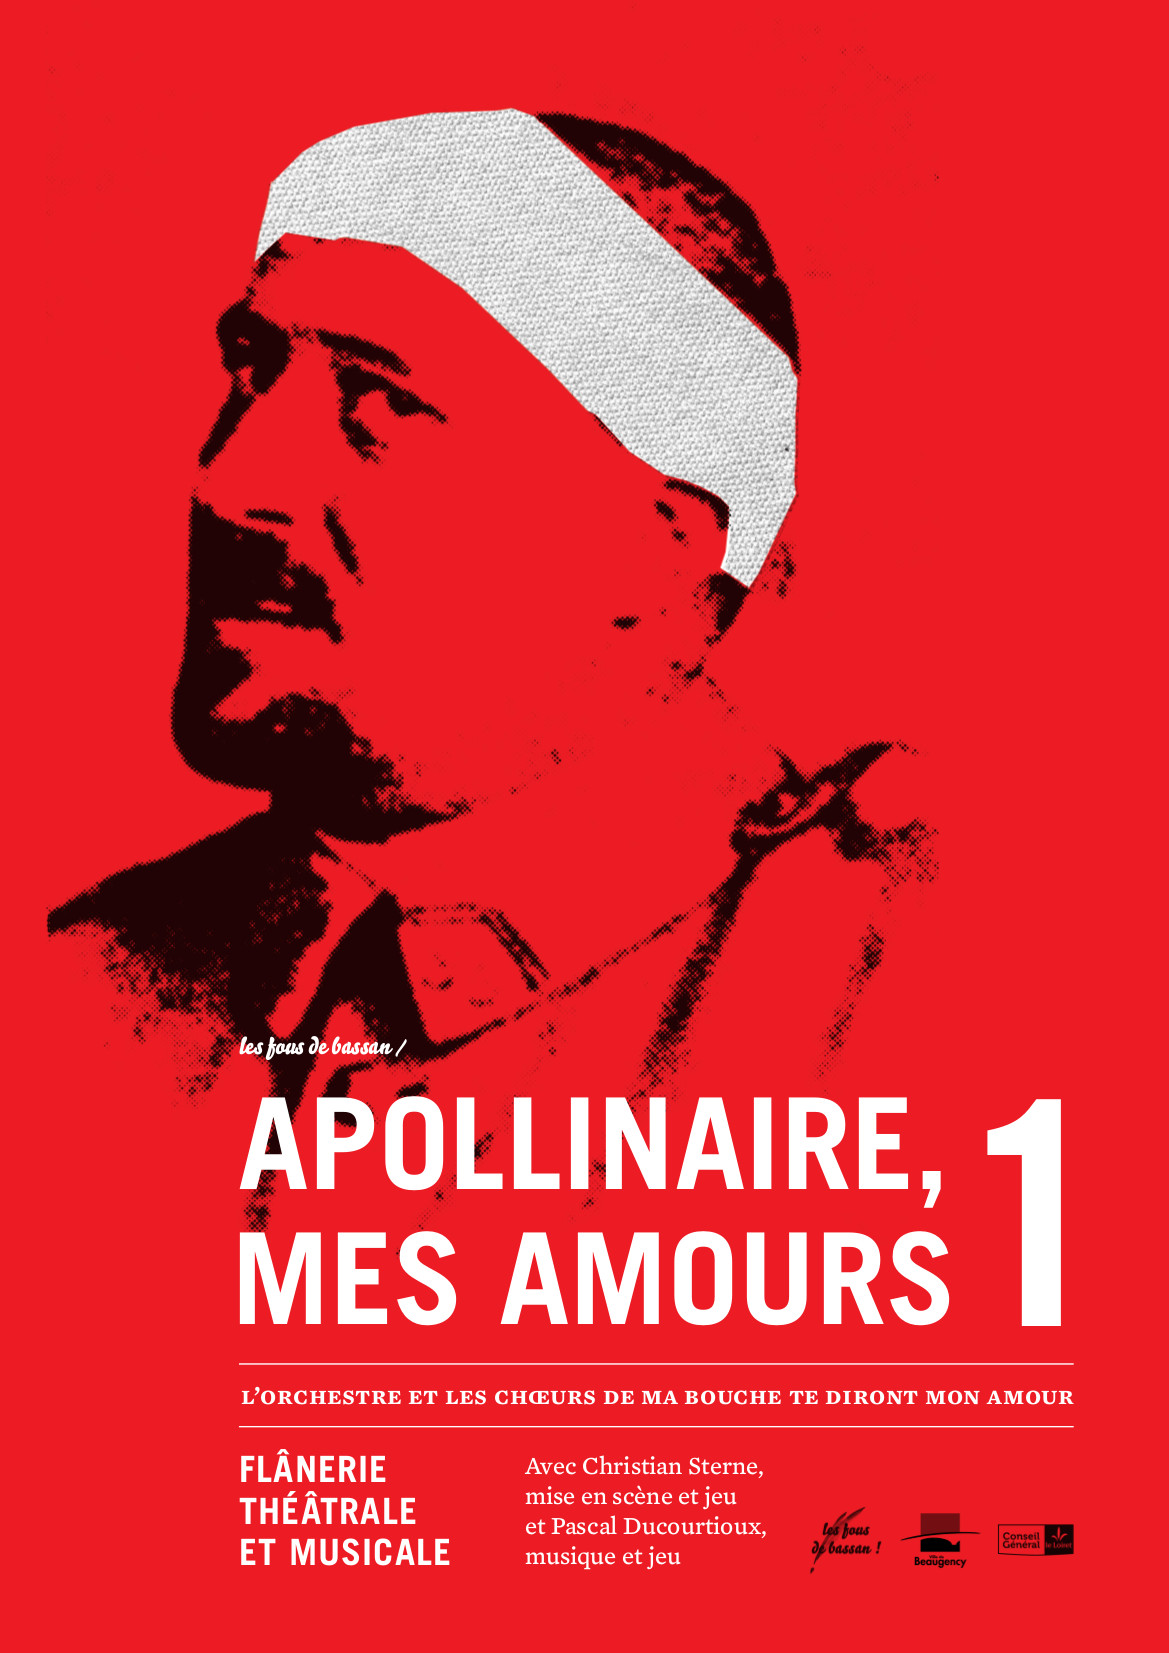 Apollinaire, MES AMOURS 1